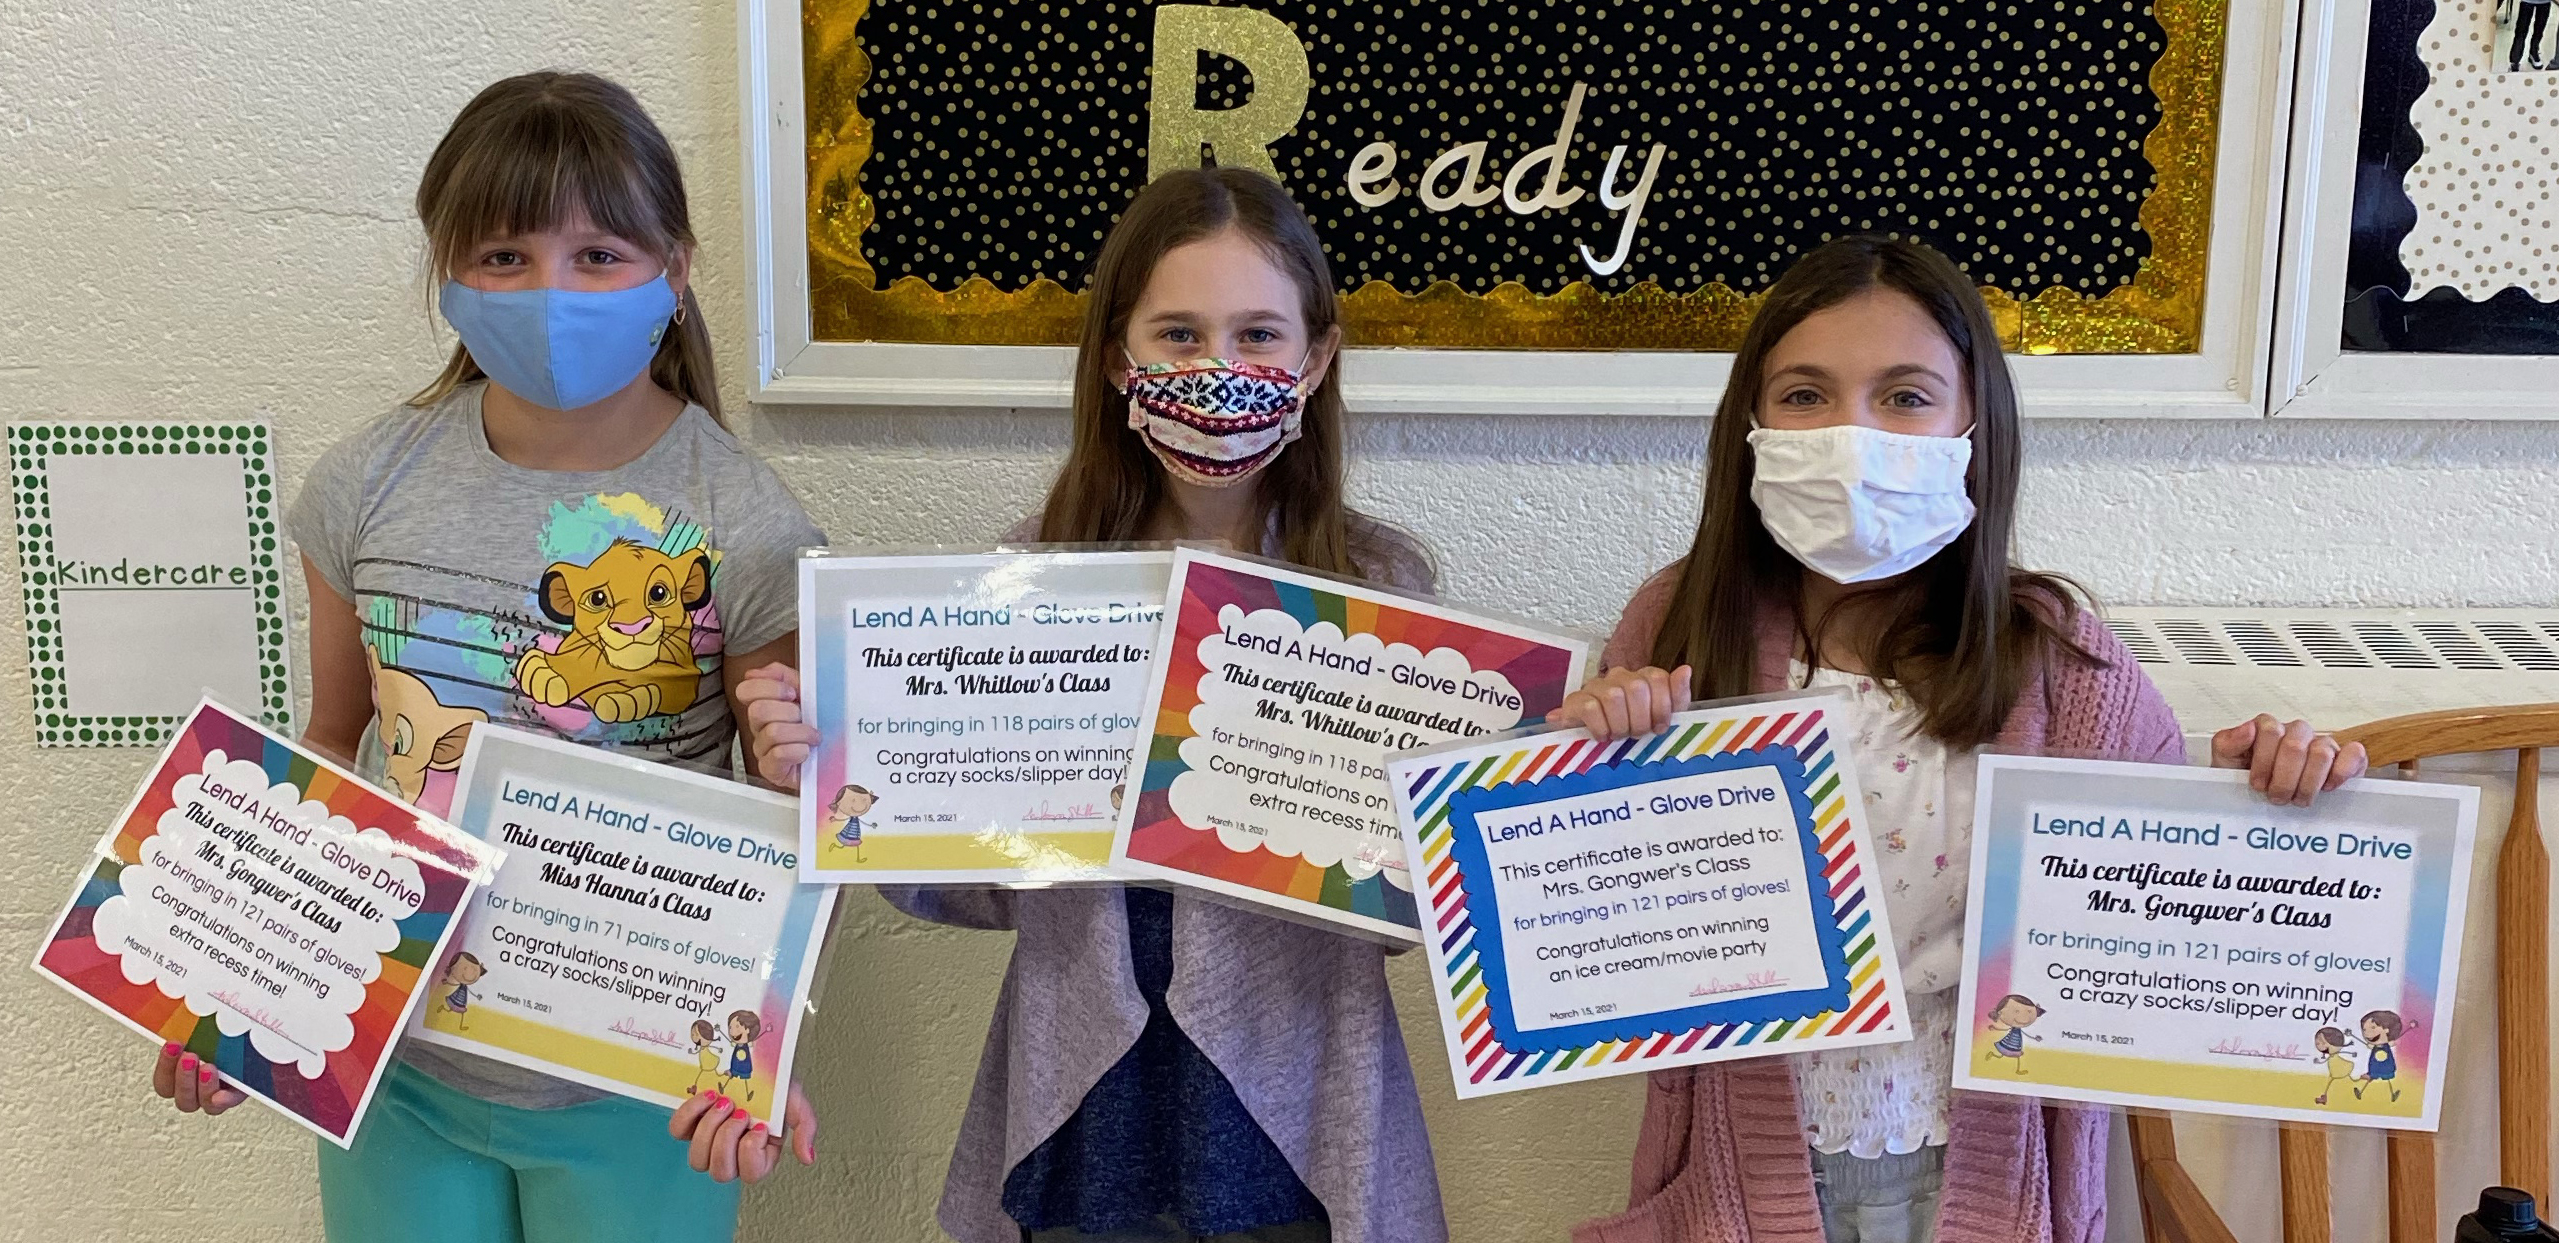 three students wearing masks and holding up certificates